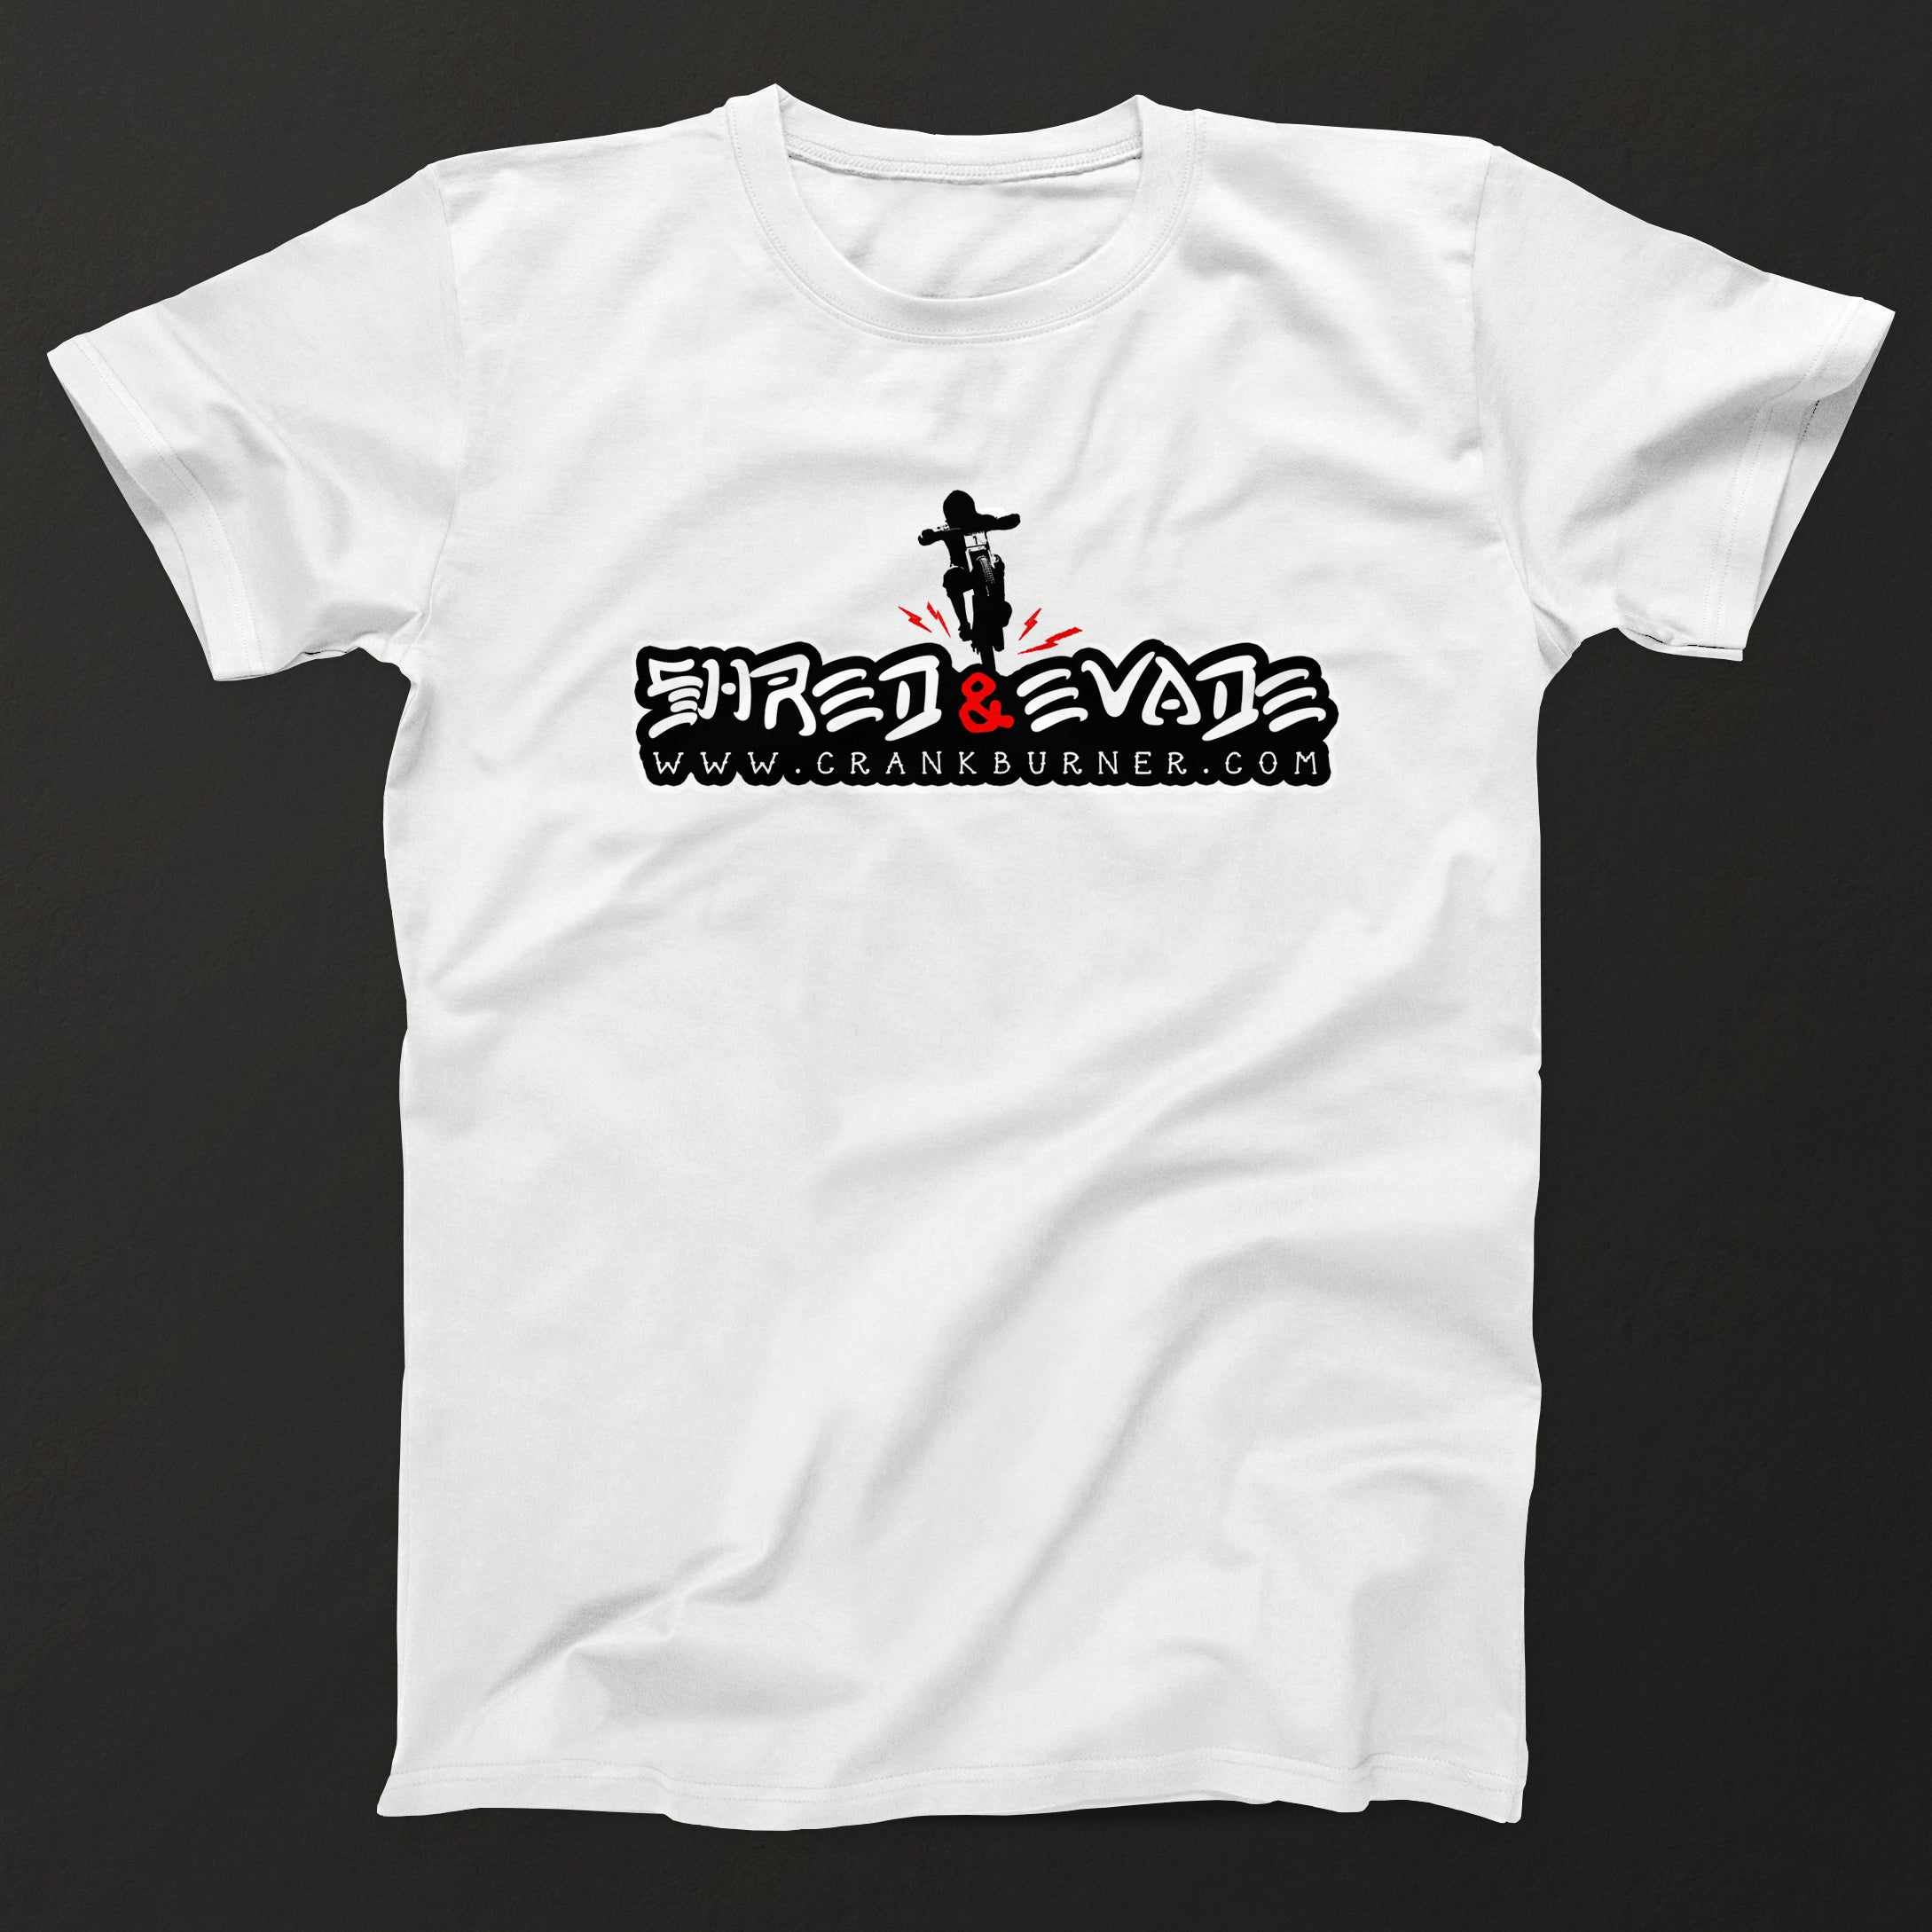 Shred and Evade - White T-shirt